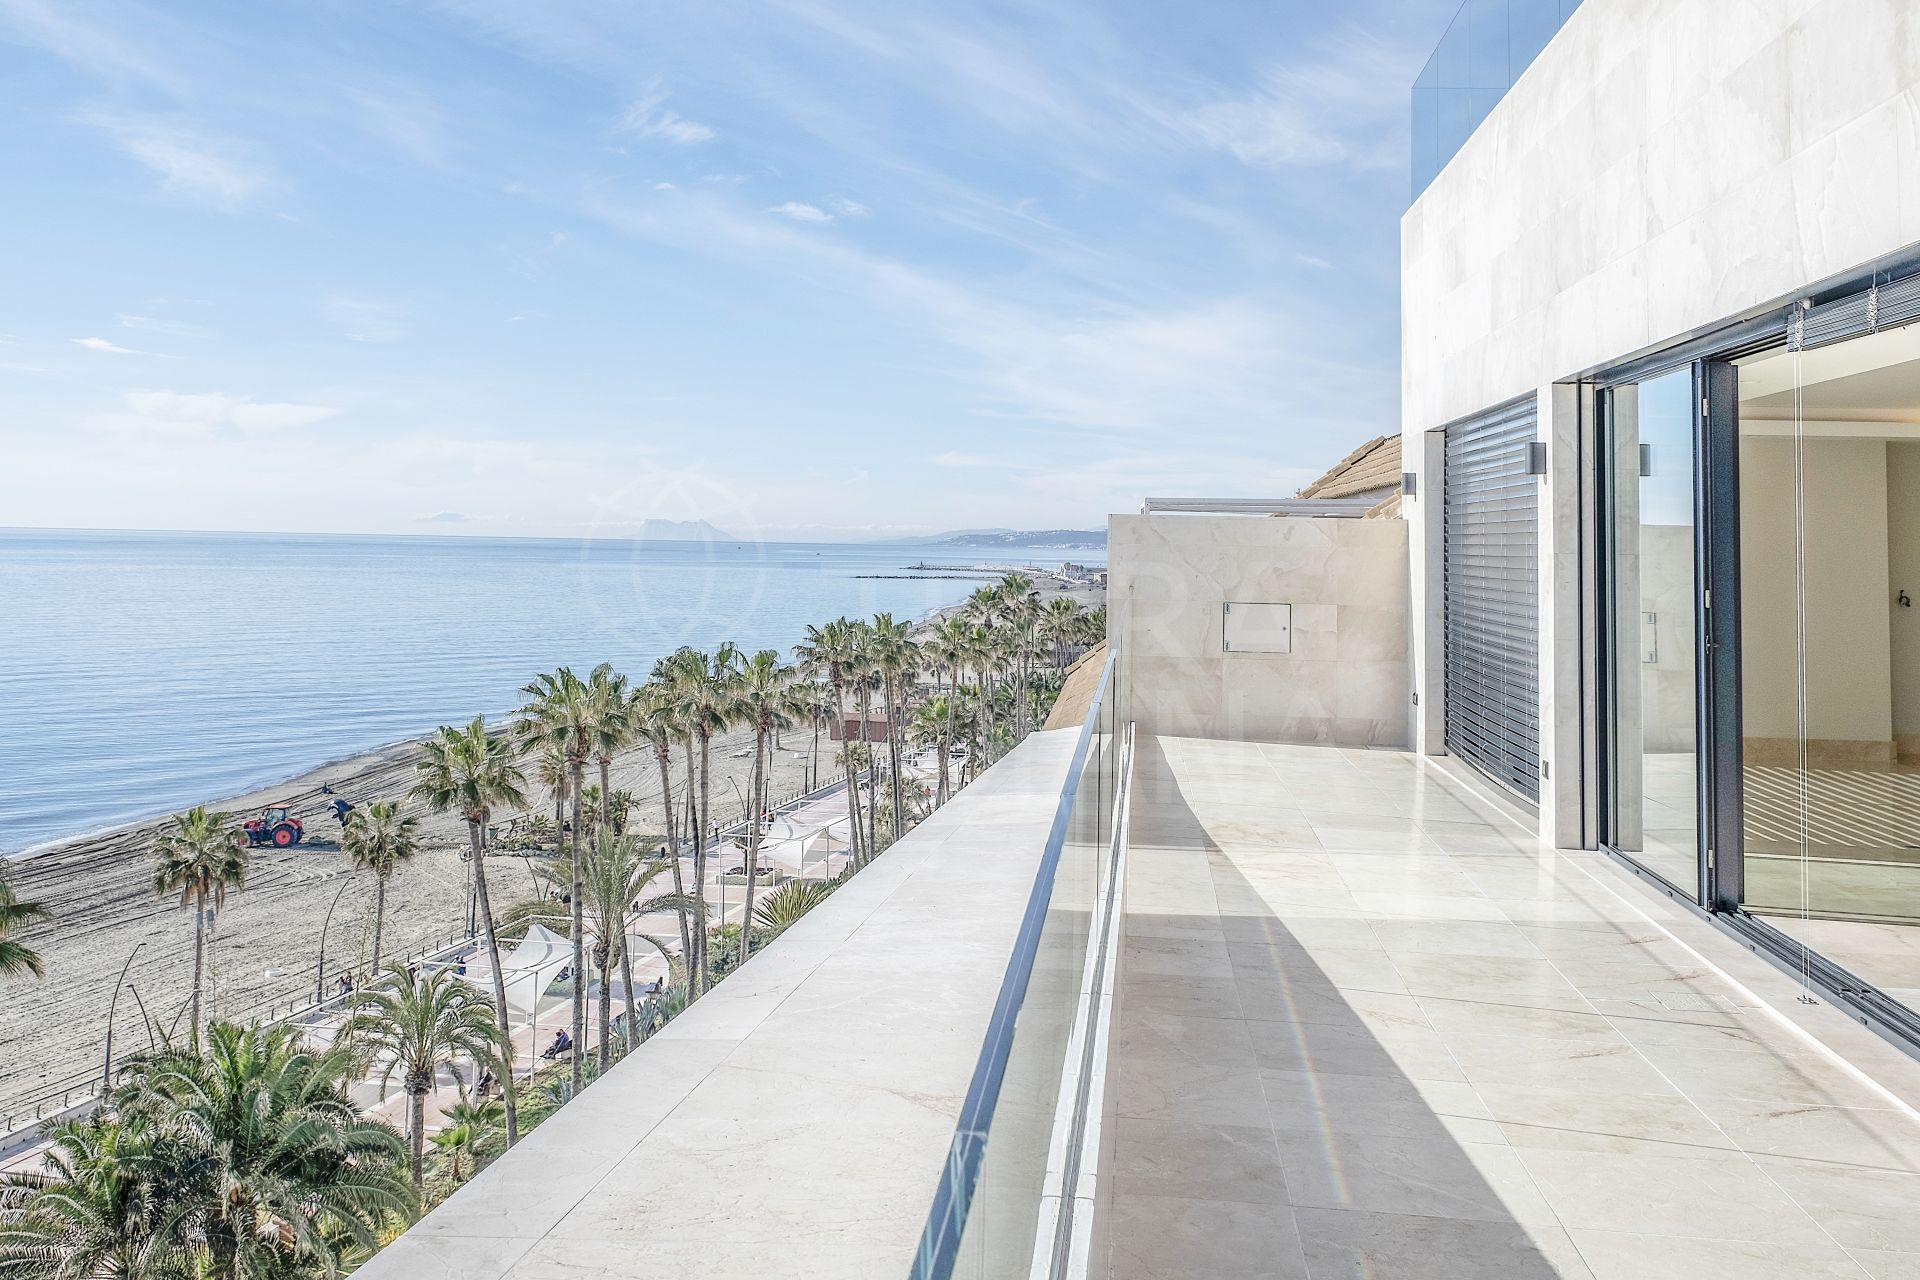 Seafront luxurious penthouse with large solarium, jacuzzi and boundless sea views for sale in Santa Ana, Estepona centre